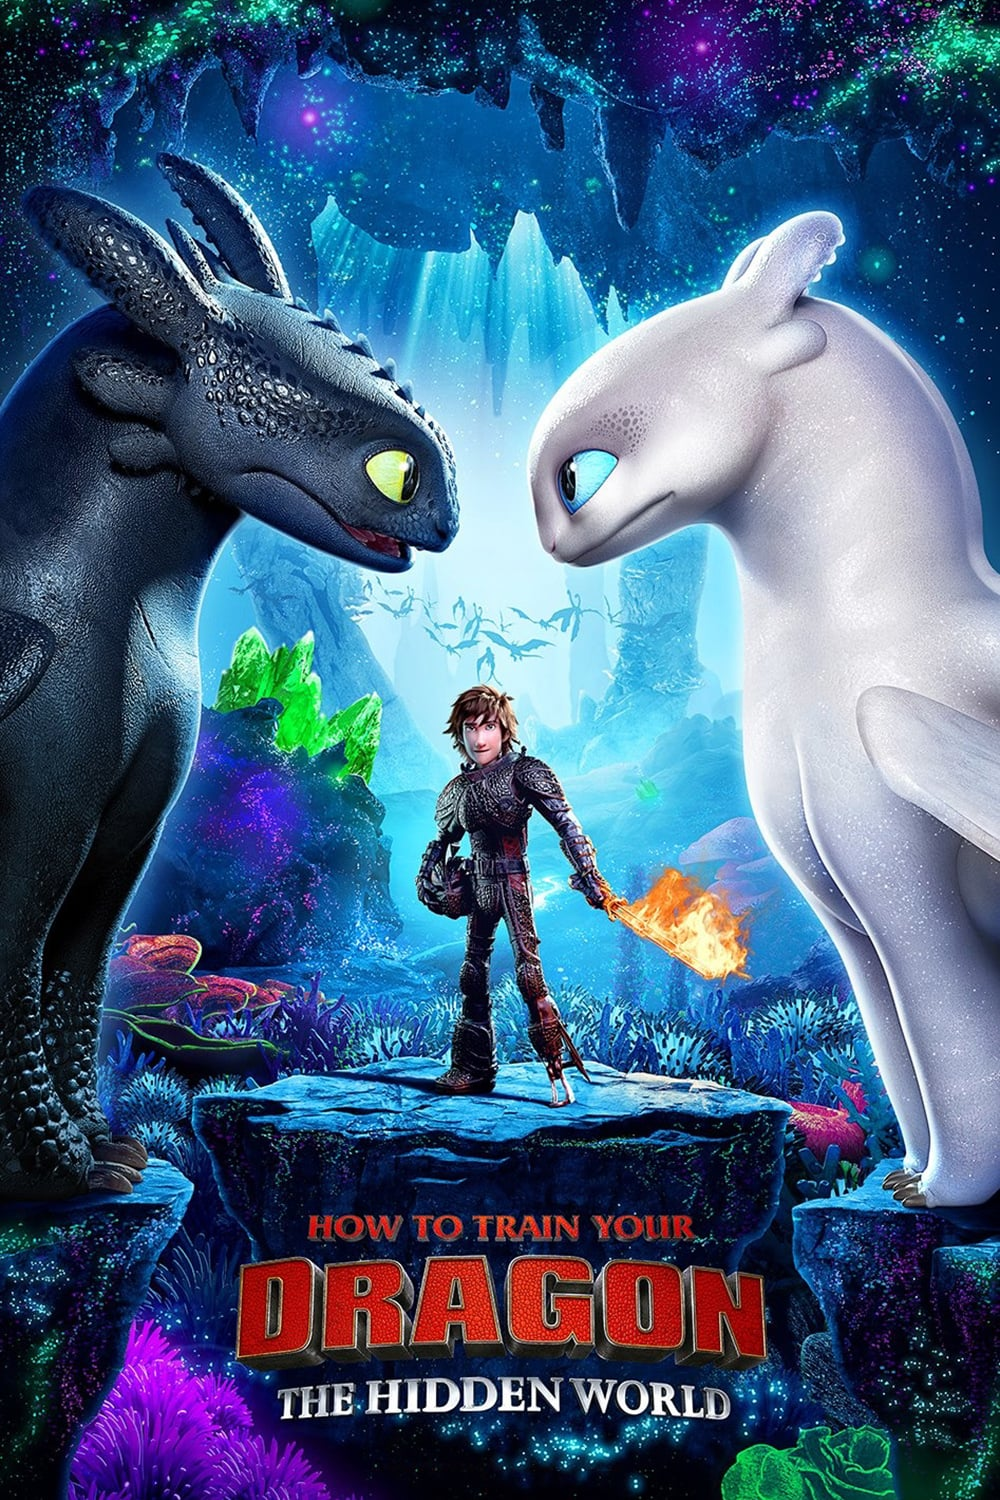 How to Train Your Dragon: The Hidden World (2019) Official Trailer #1